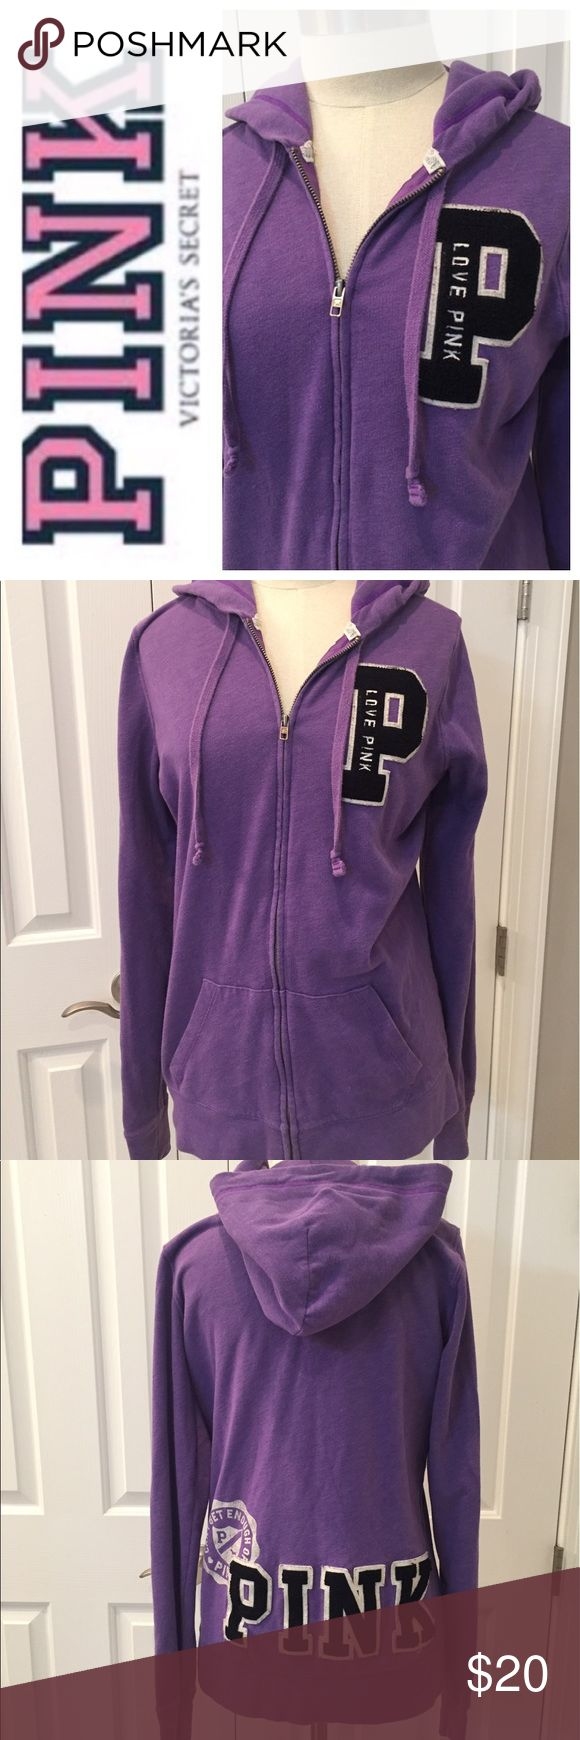 PINK Victoria's Secret Purple Zip Up Hoodie Medium So soft and comfy. PINK zip up hoodie has pockets in the front . Size Medium. Preowned and clean, check out my closet to save on bundles. PINK Victoria's Secret Tops Sweatshirts & Hoodies